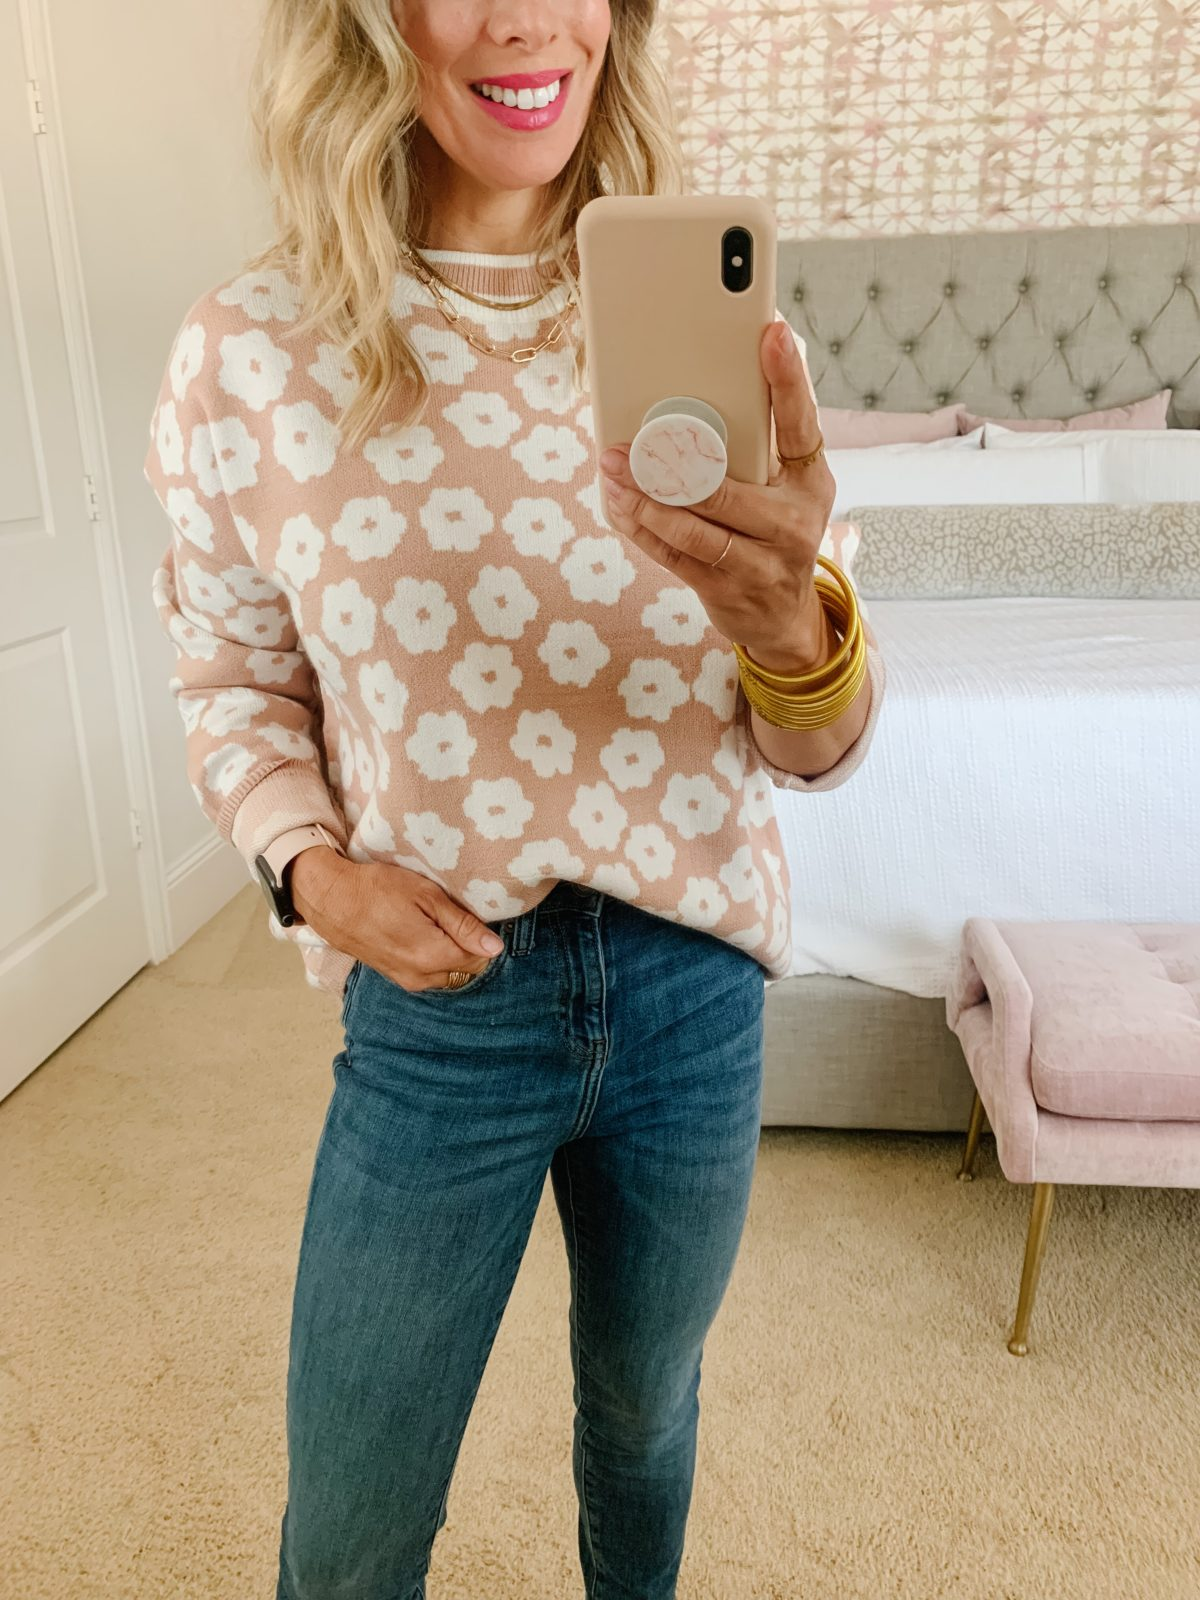 Amazon Fashion Finds, Flower Sweater, Jeans, Booties